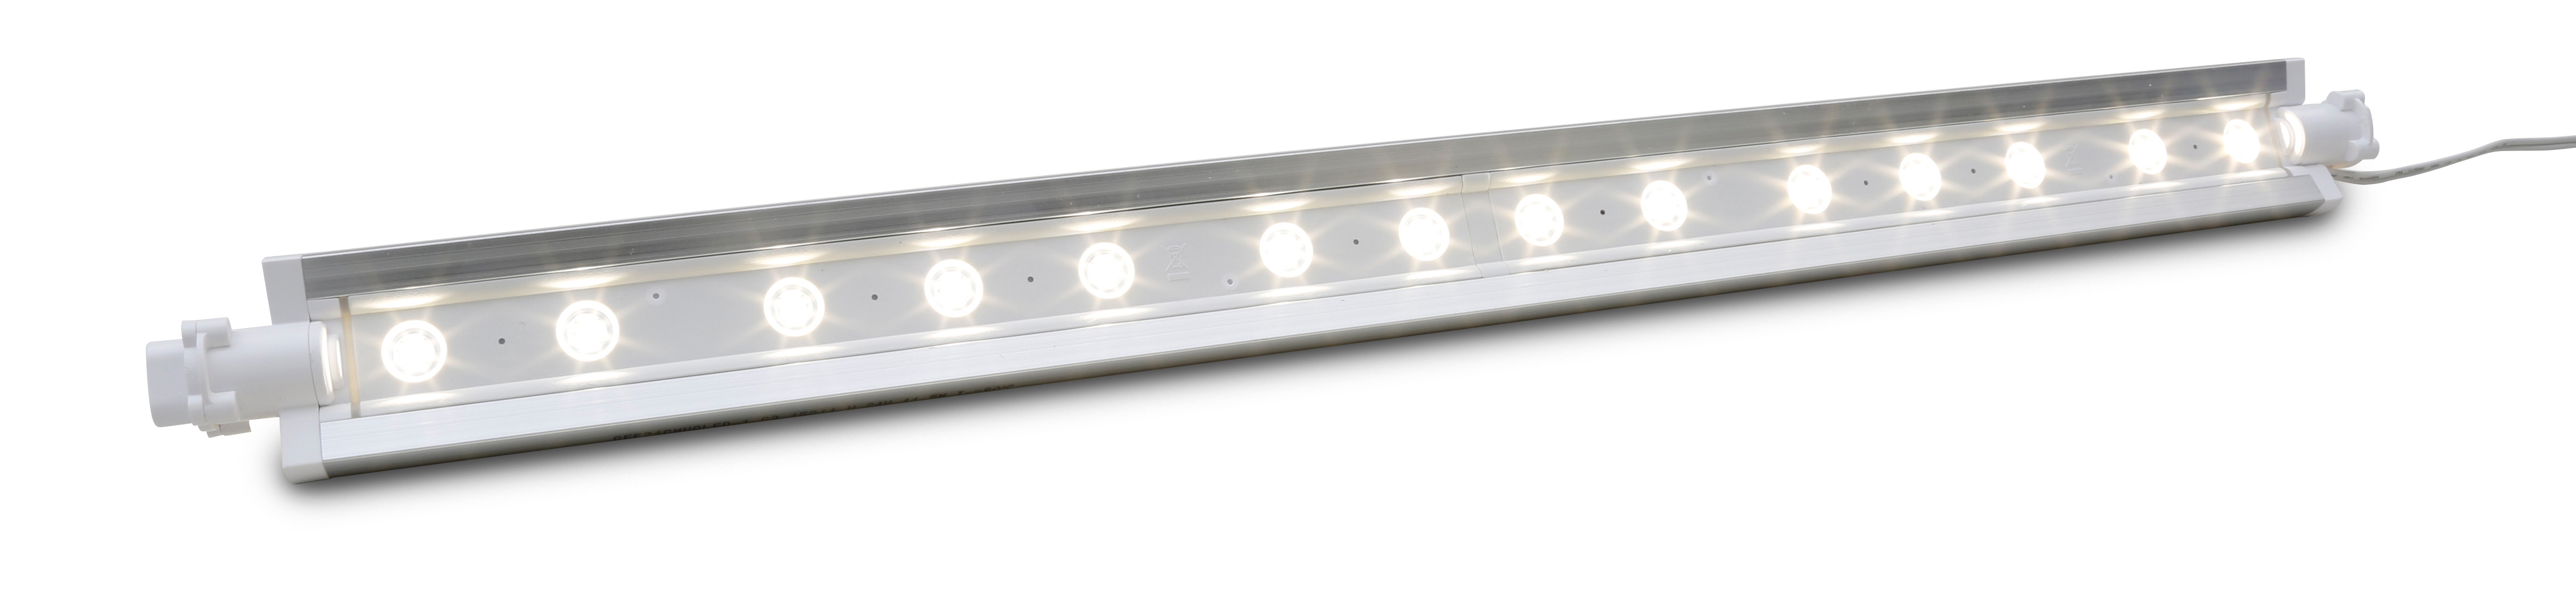 "GE LineFit LED Lighting System 12"" - 32 Modules"